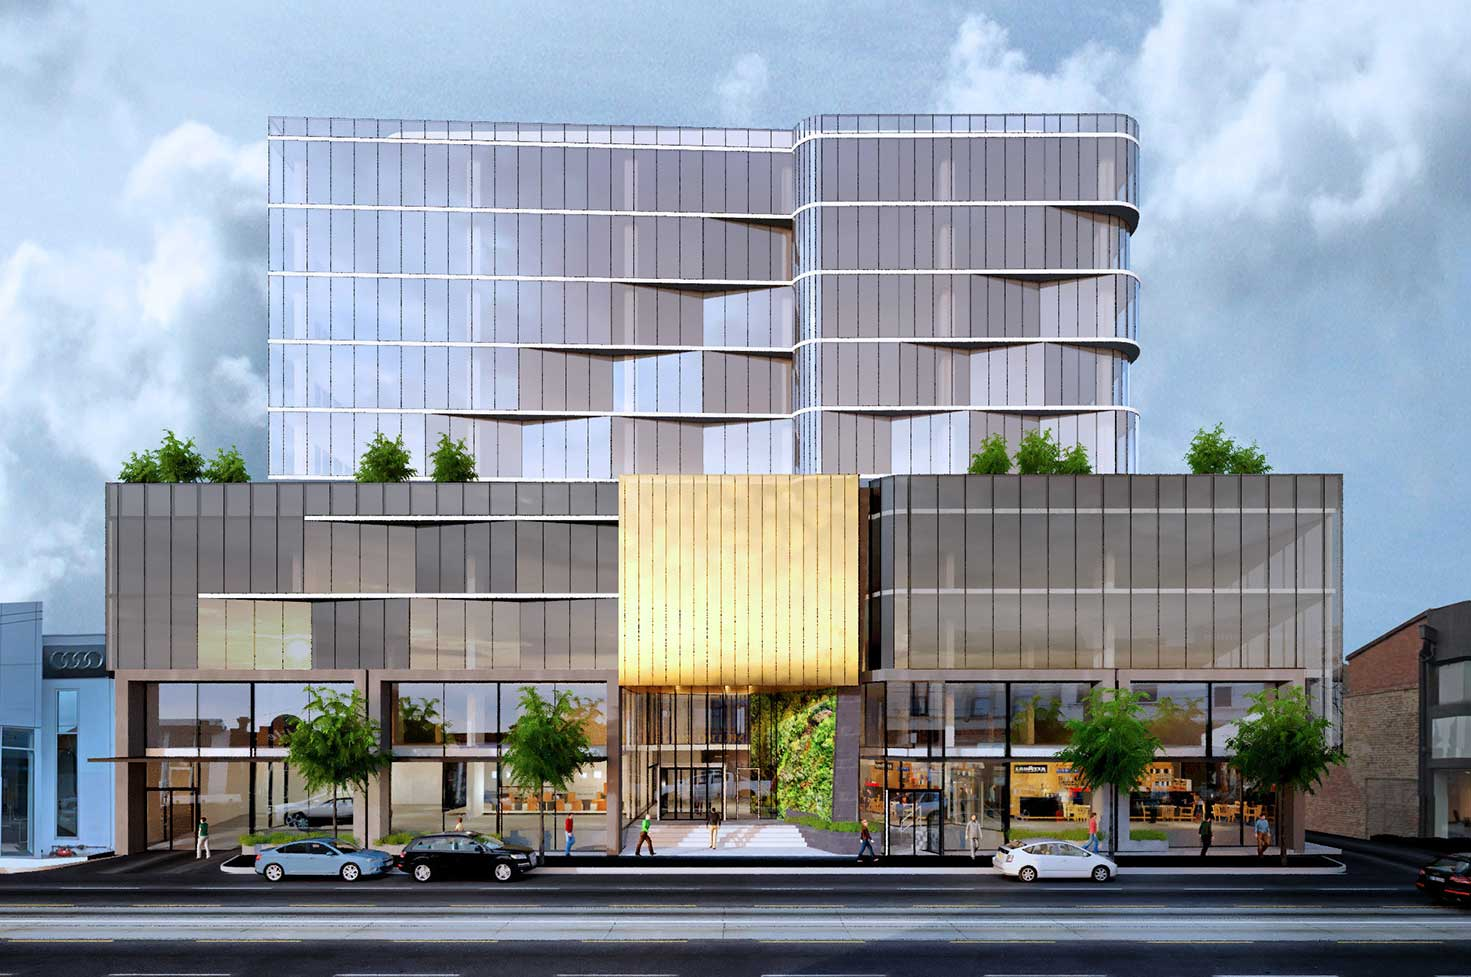 Swan Street commercial architecture frontage